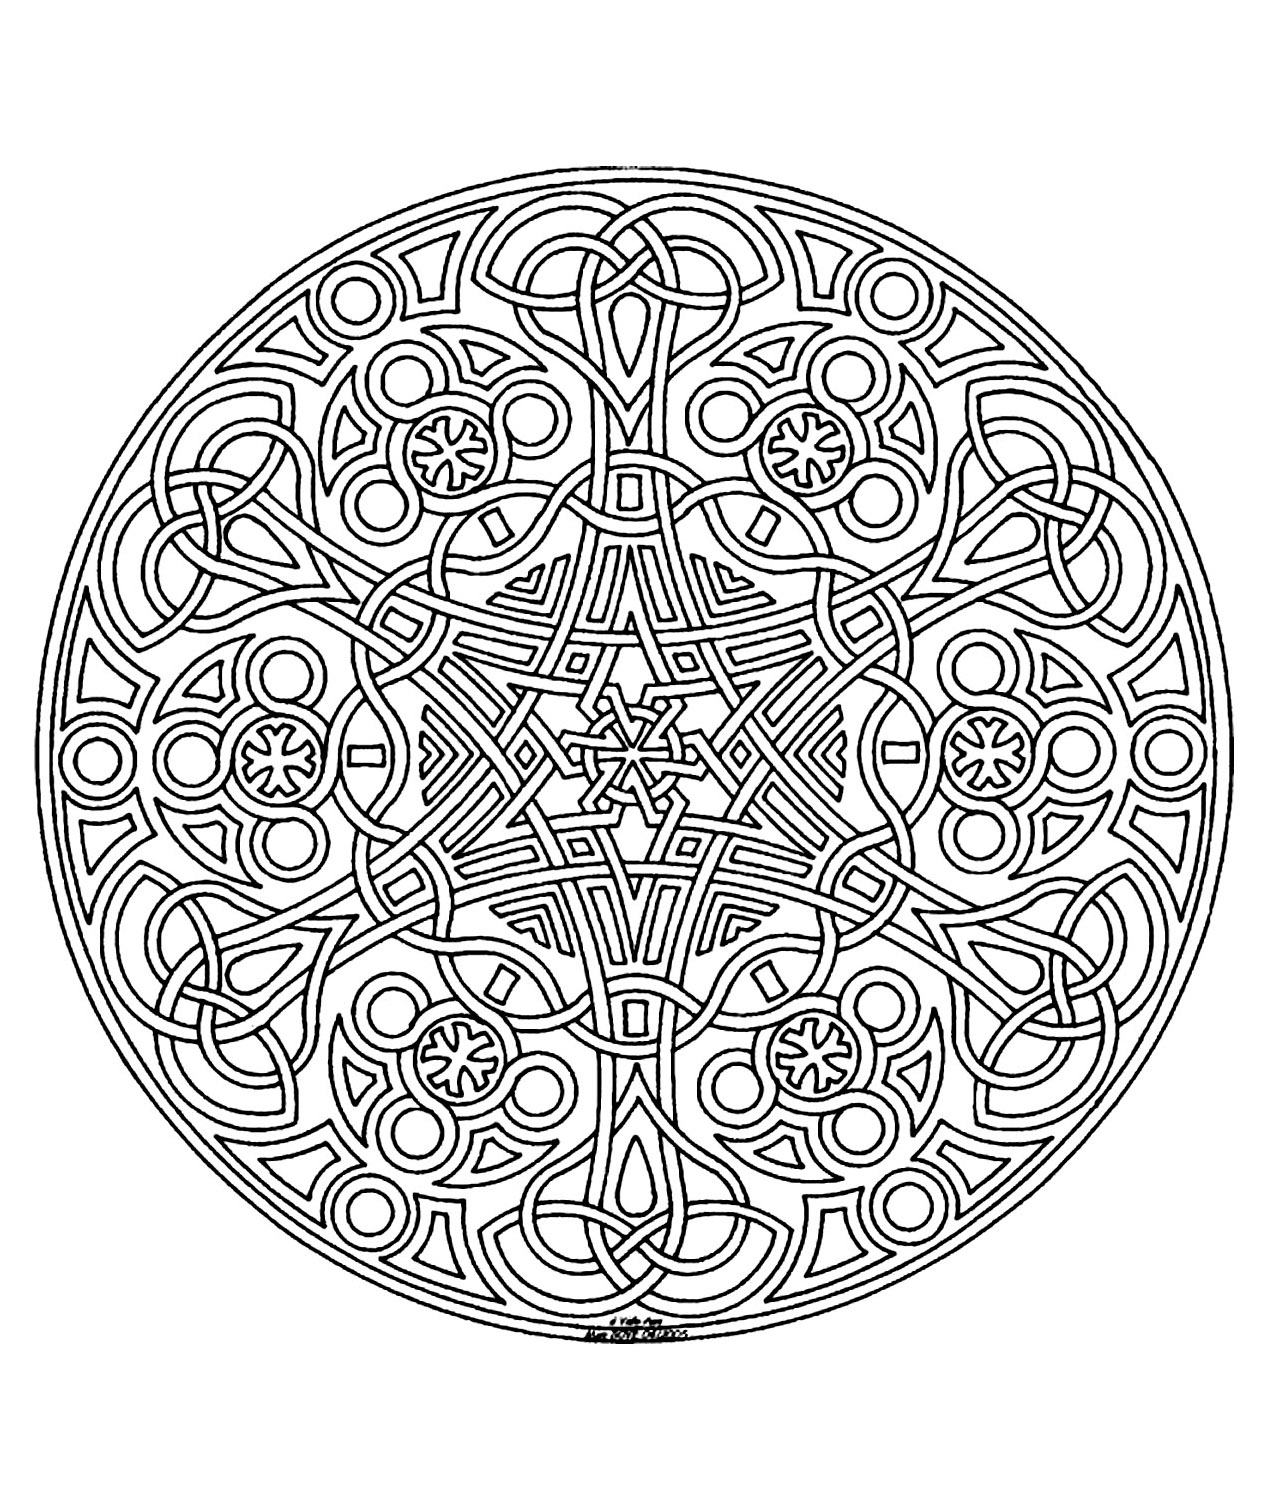 mandalas coloring pages for adults coloring free mandala difficult adult to print 14. Black Bedroom Furniture Sets. Home Design Ideas